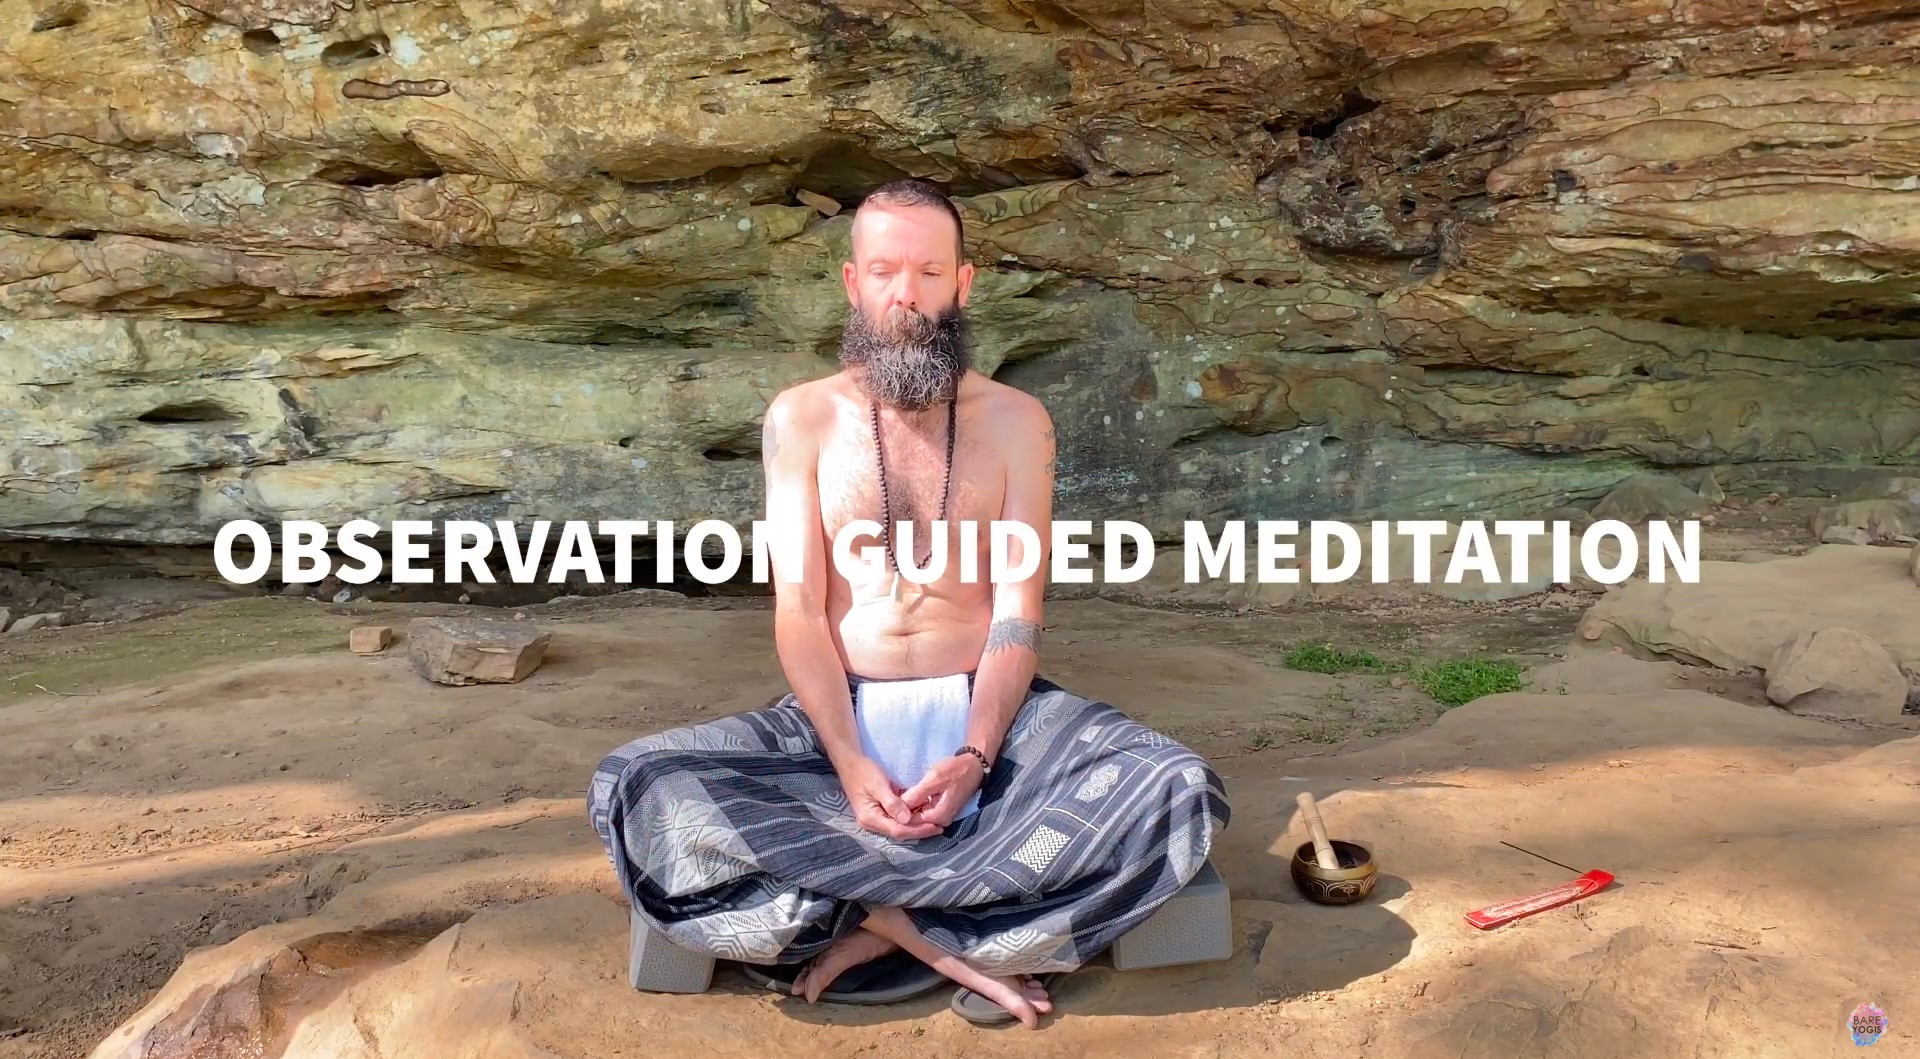 Observation Guided Meditation